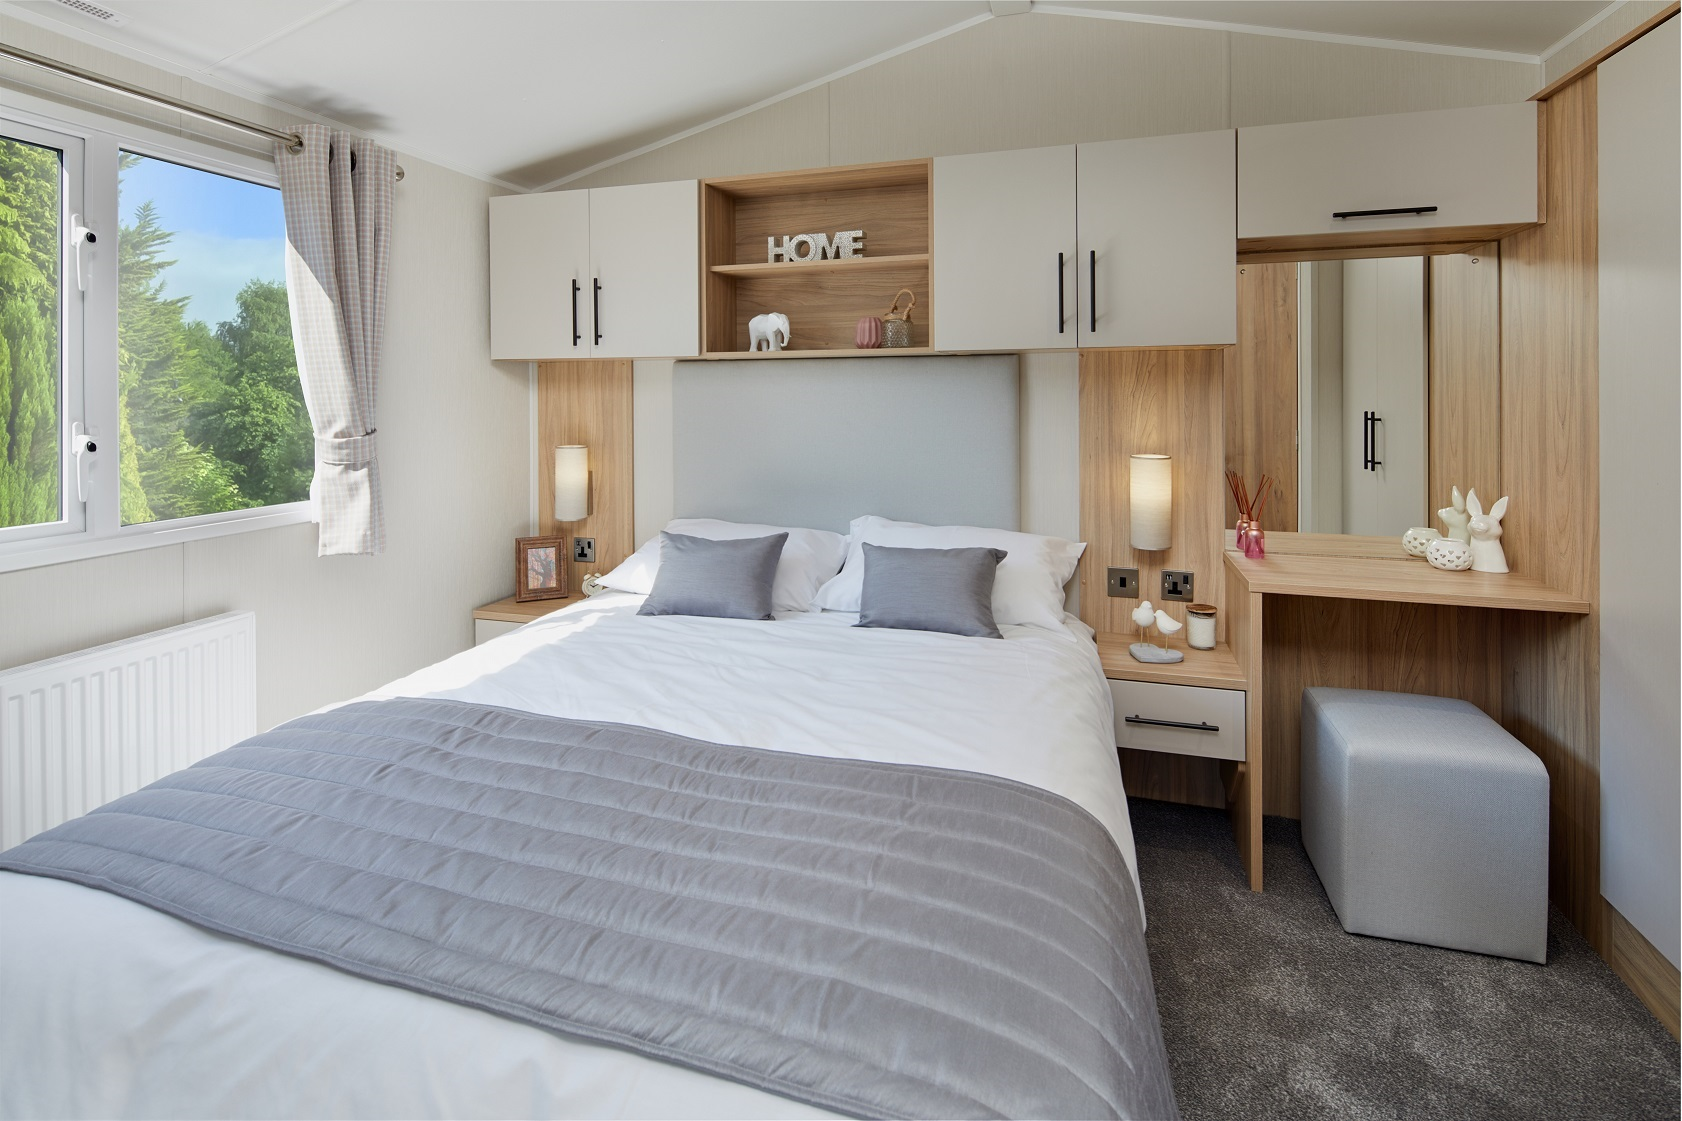 Willerby Manor: New Static Caravans and Holiday Homes for Sale, Available to Order Large Image 3